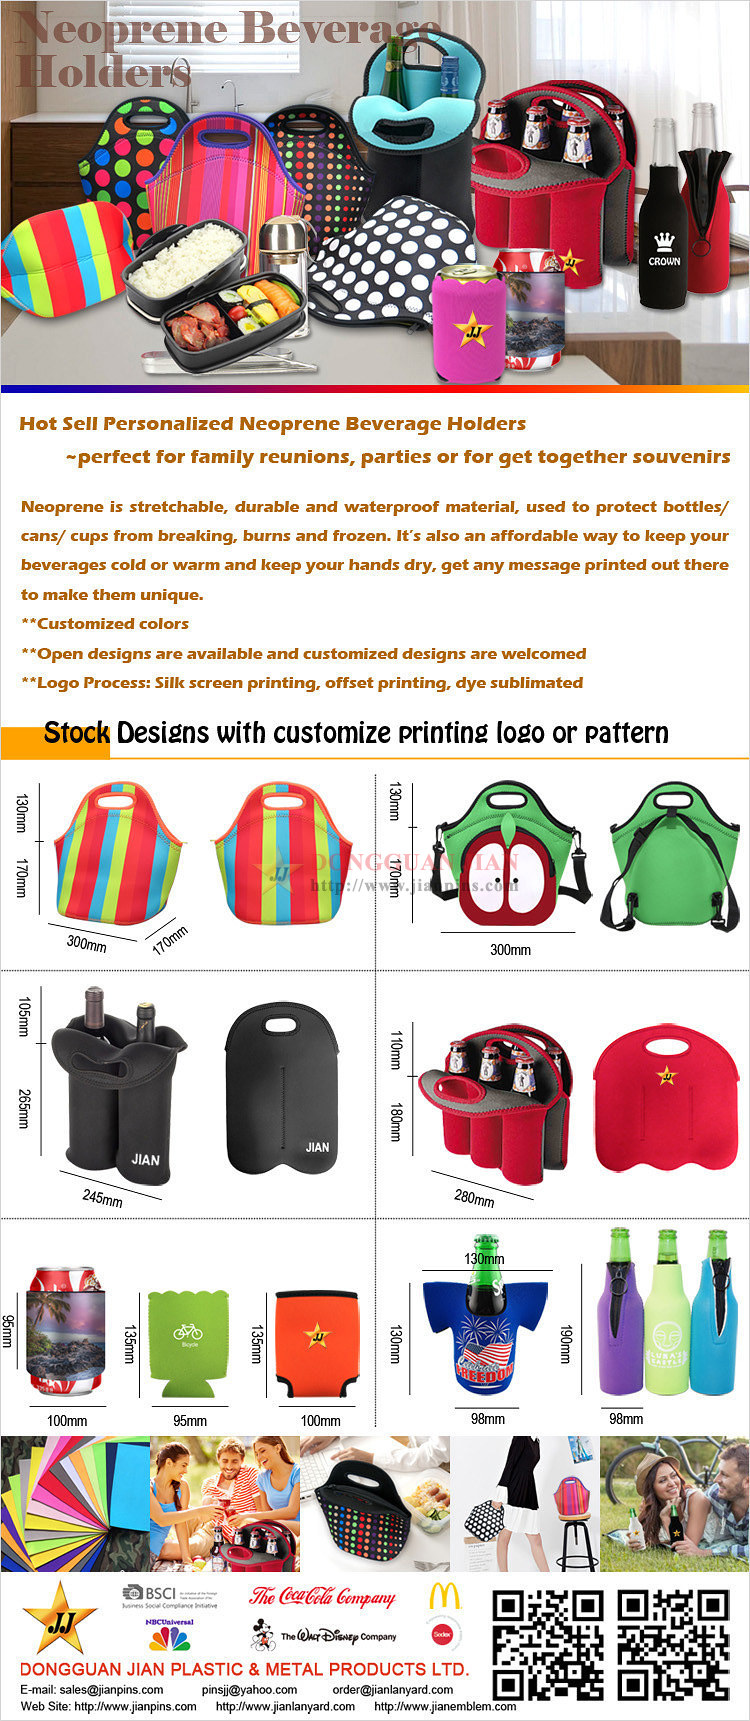 Hot Selling personalizada Neoprene Beverage titulares